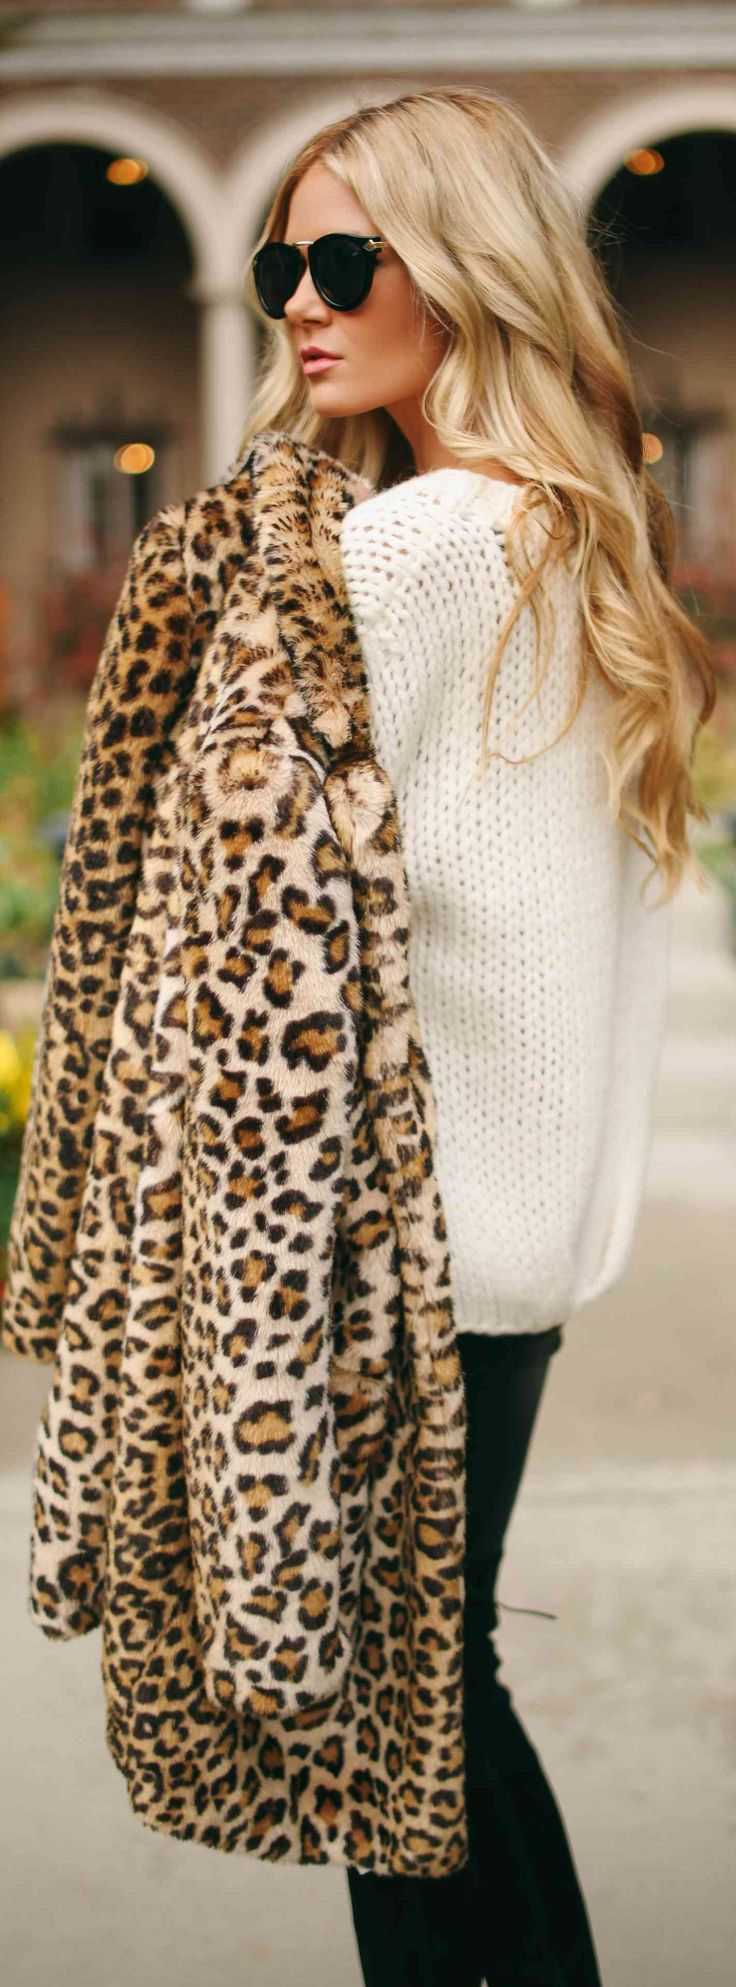 Street style sweater and leopard prints fur coat. rubylovepinkk.tumblr.com